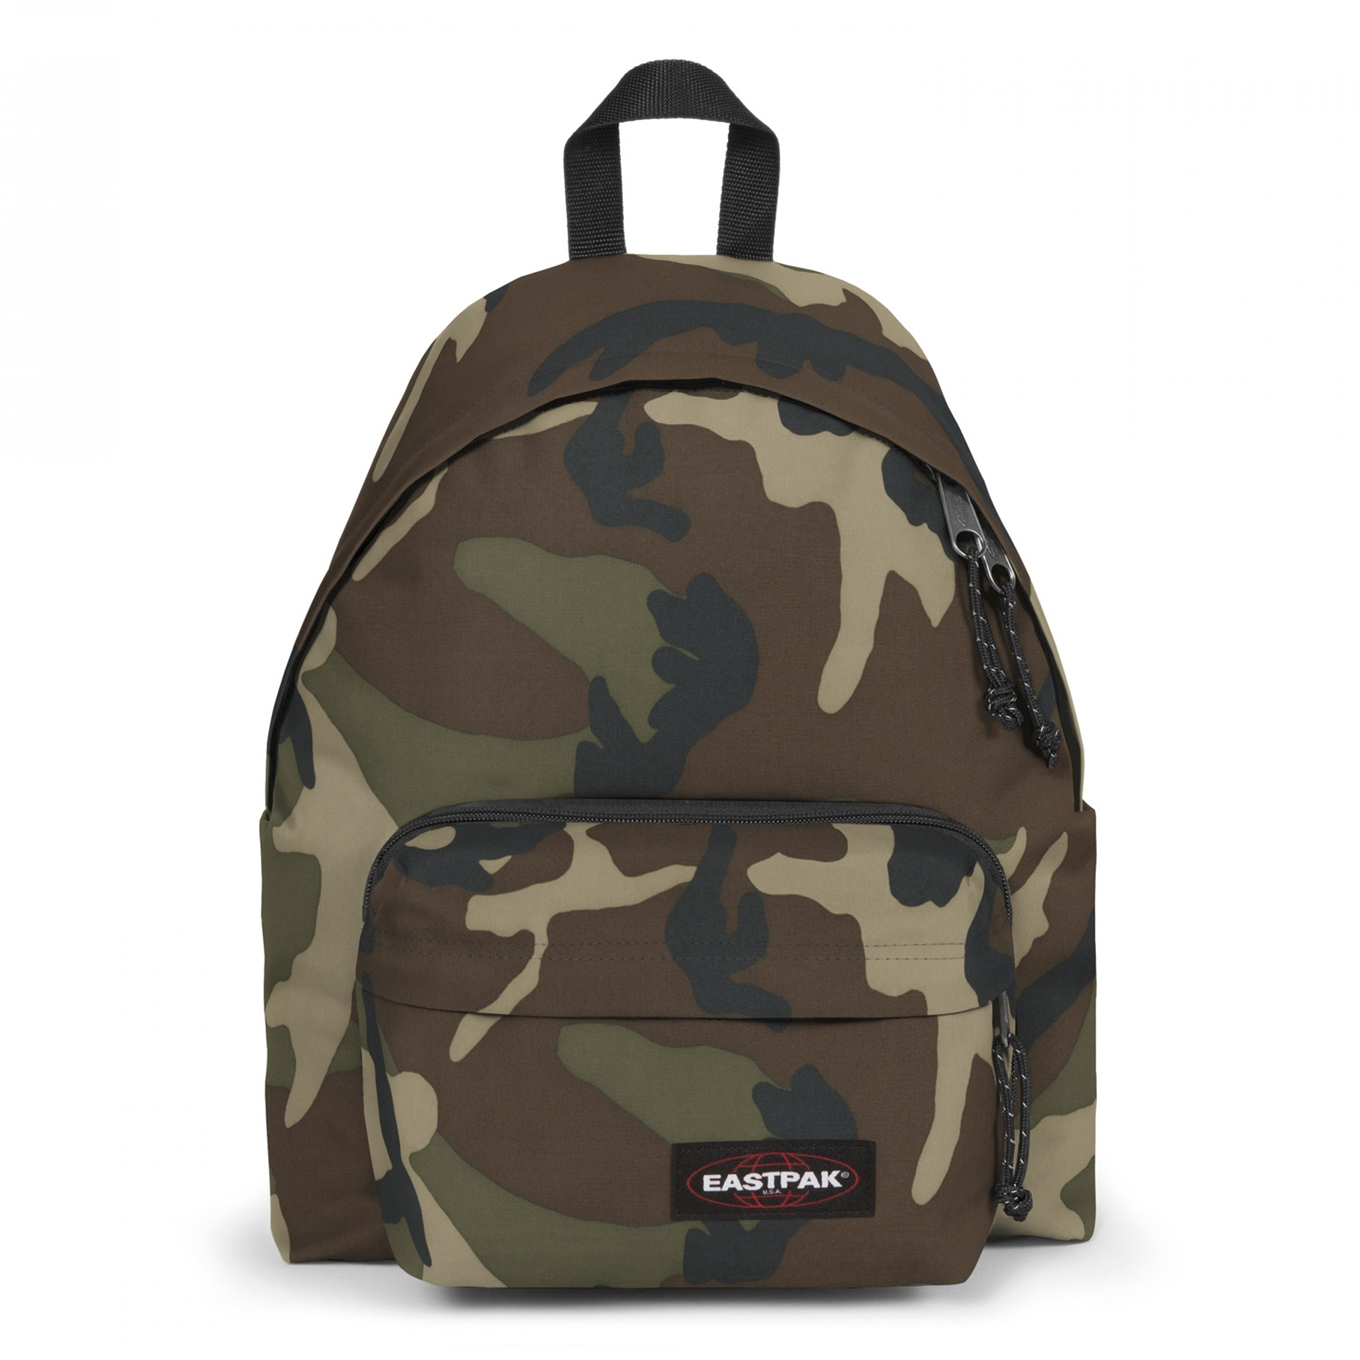 Eastpak Padded Travell&apos;R Rugzak camo Weekendtas <br/></noscript><img class=